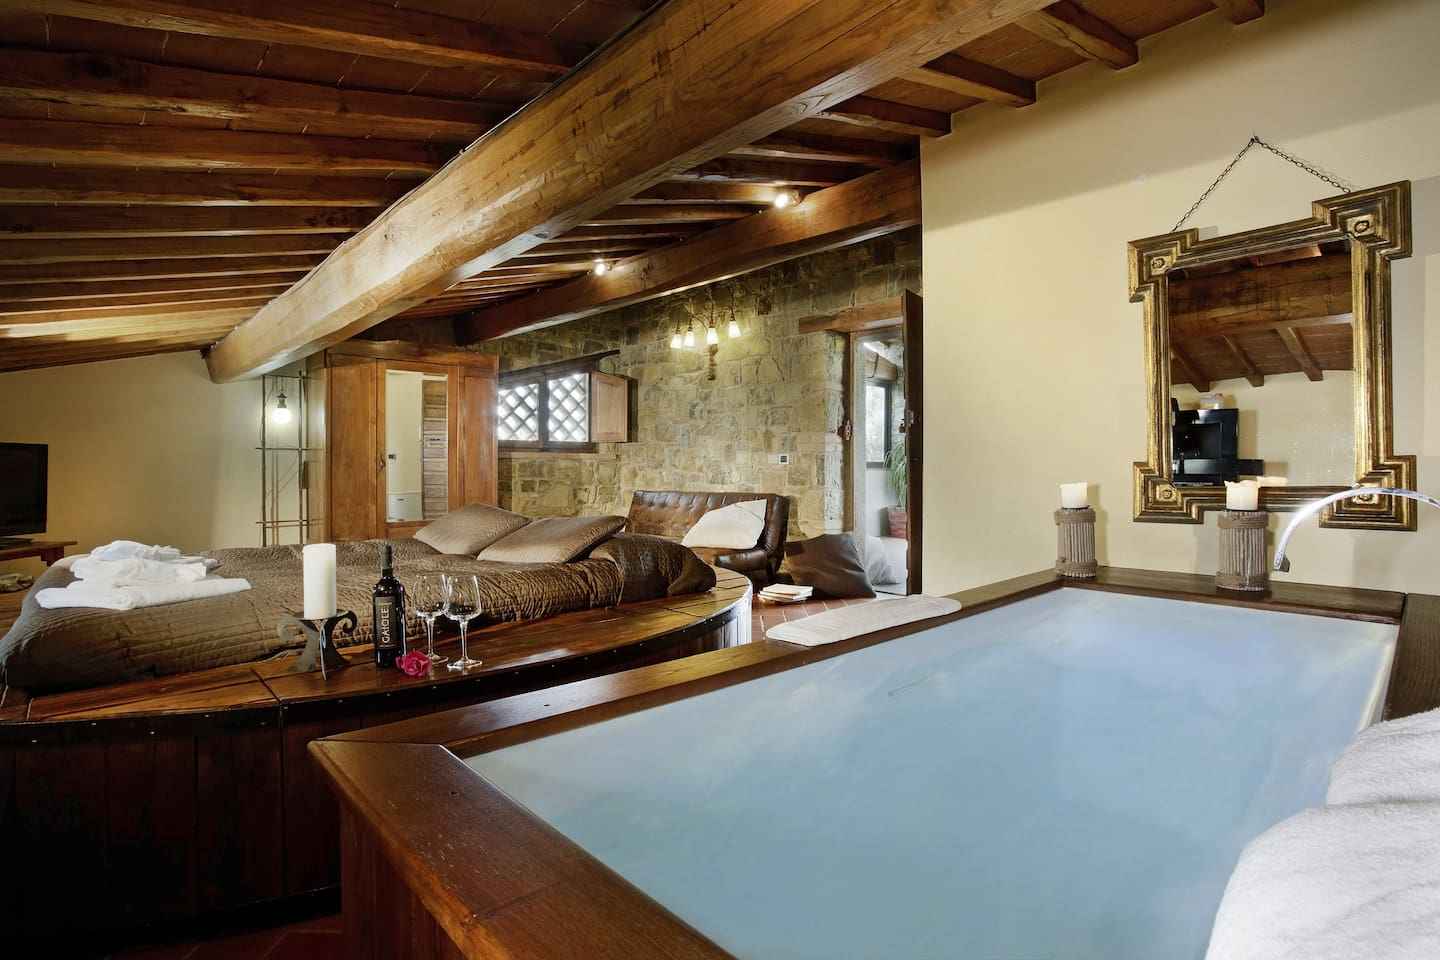 the bathtub in the bedroom